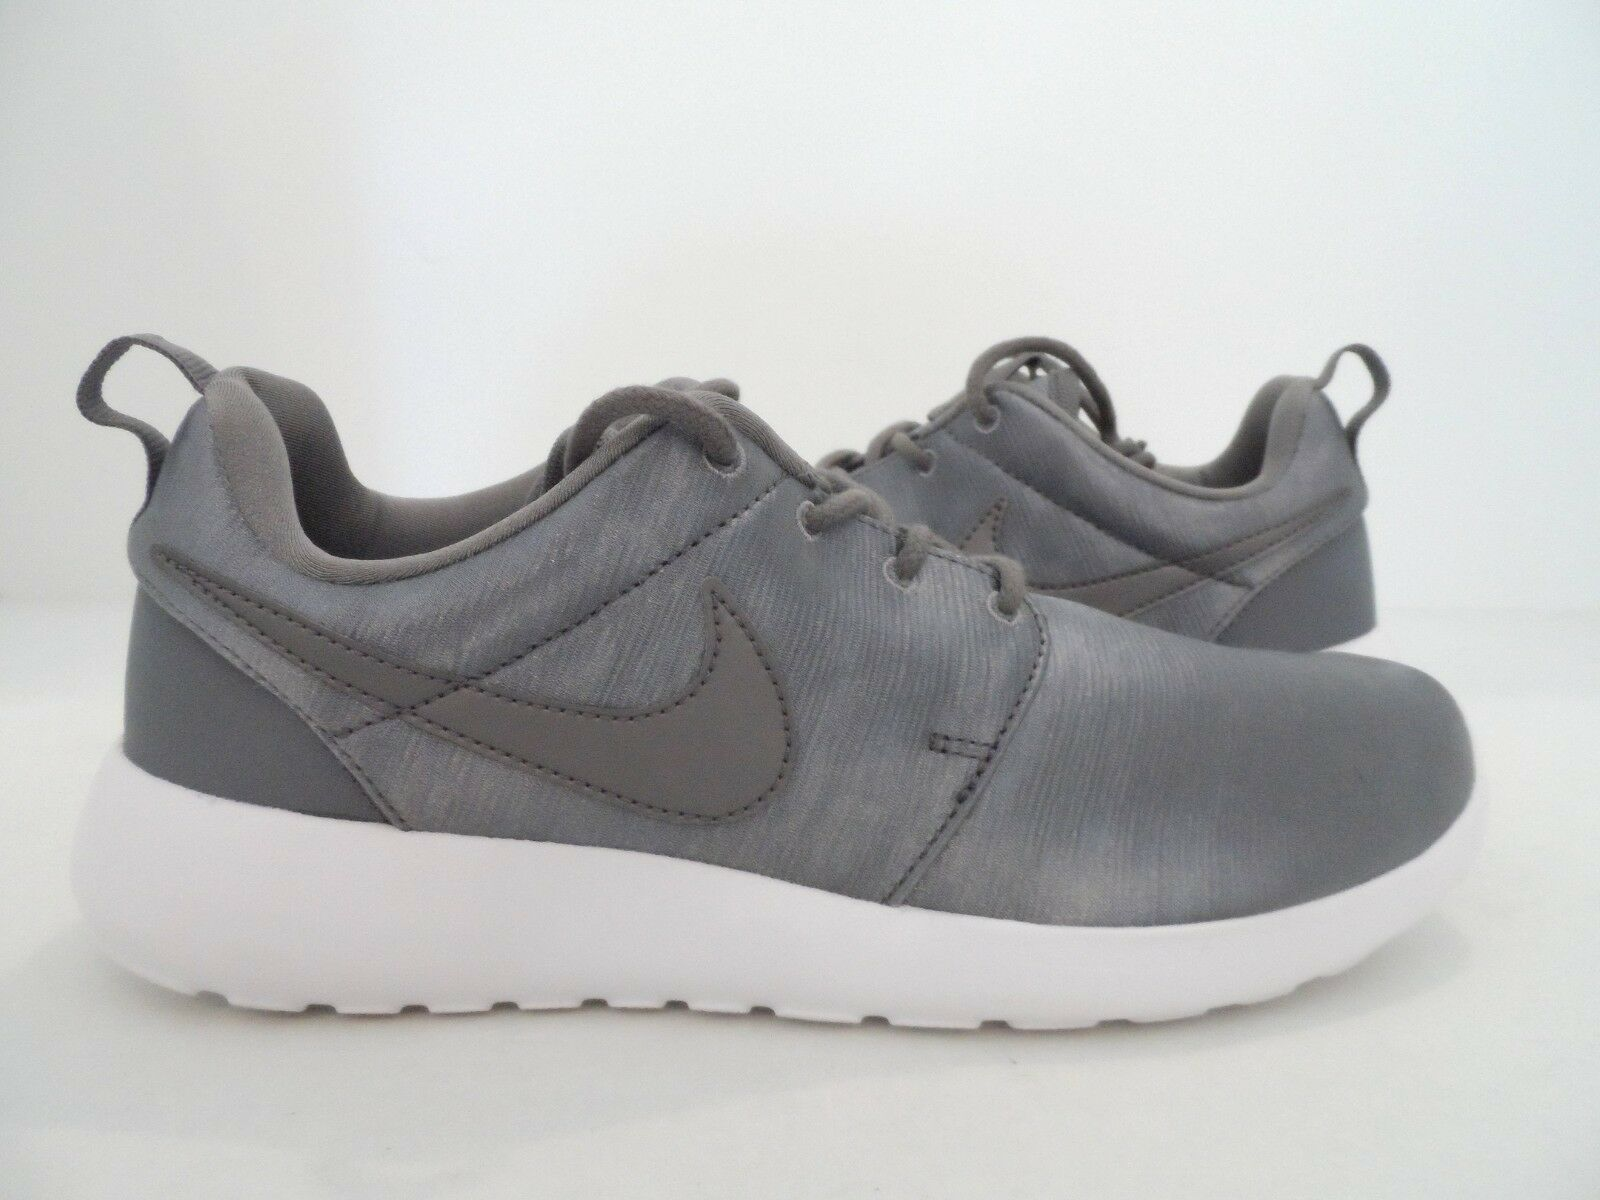 e1ba1f9dcc1a1 Nike Women s Roshe One PRM Running Shoes Smoke Gray White Gray White Gray  White Size 7 6960c6